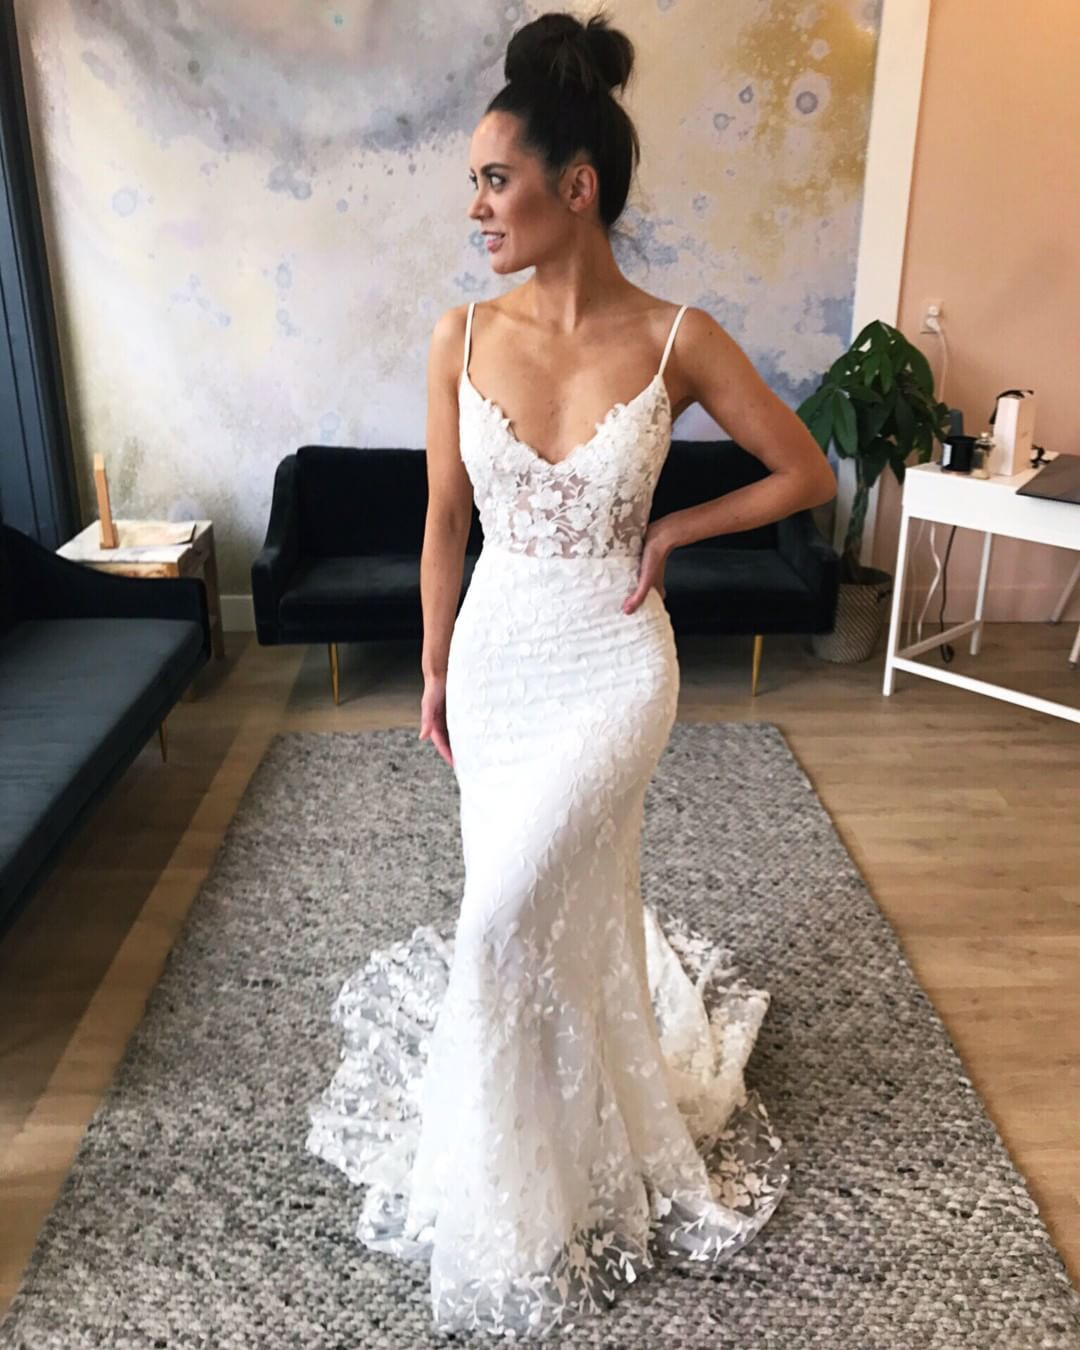 Sun S Out Bun S Out We Mean Topknots Silly Get Your Mind Out Of The Gutter Bec By Emmy Mae Wedding Dresses Lace Wedding Dresses Dream Wedding Dresses [ 1350 x 1080 Pixel ]